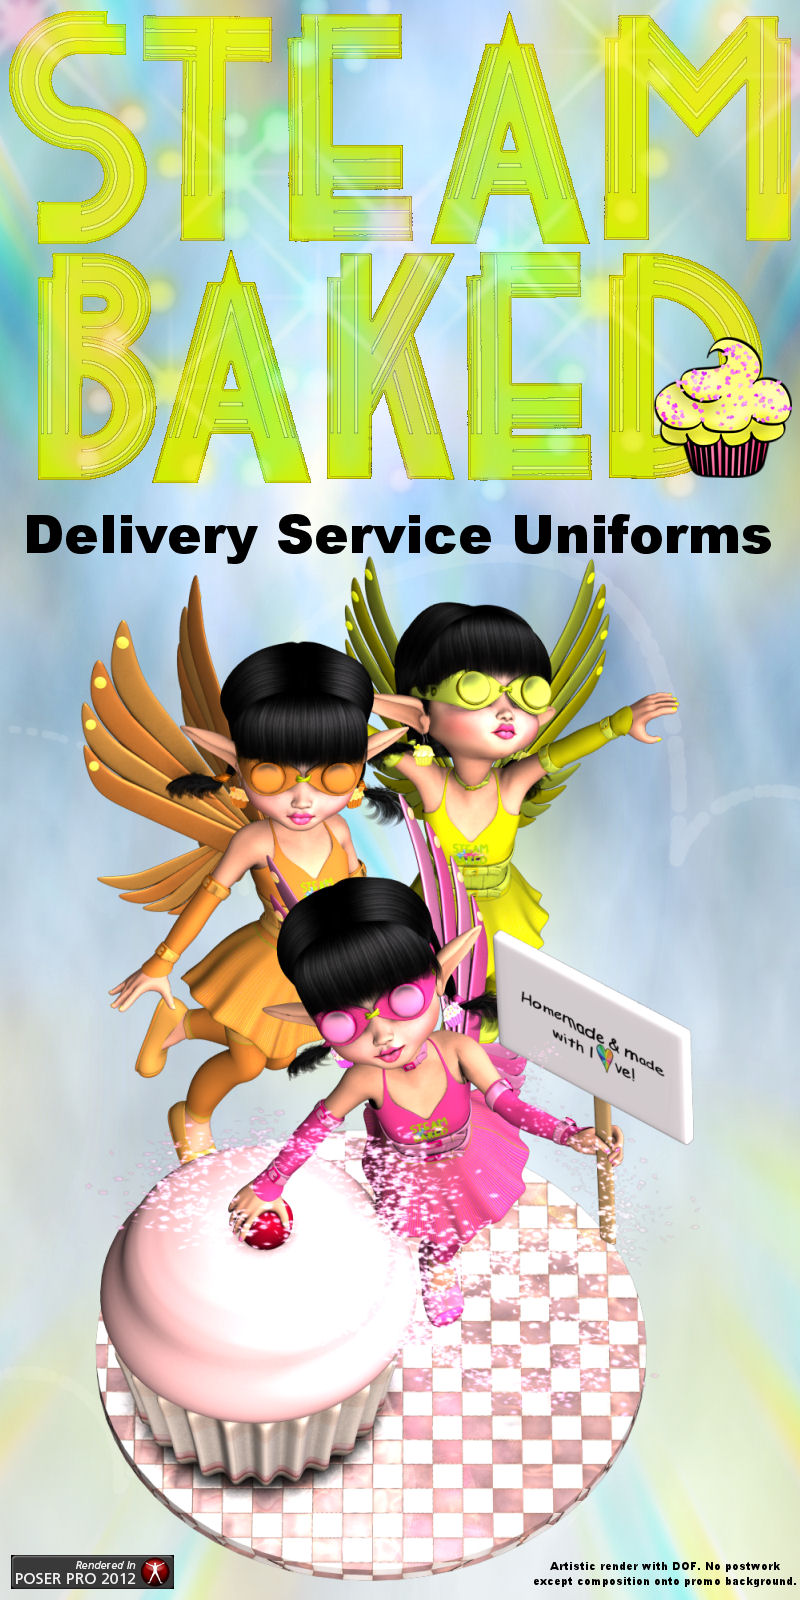 Steam Baked Delivery Service Uniforms